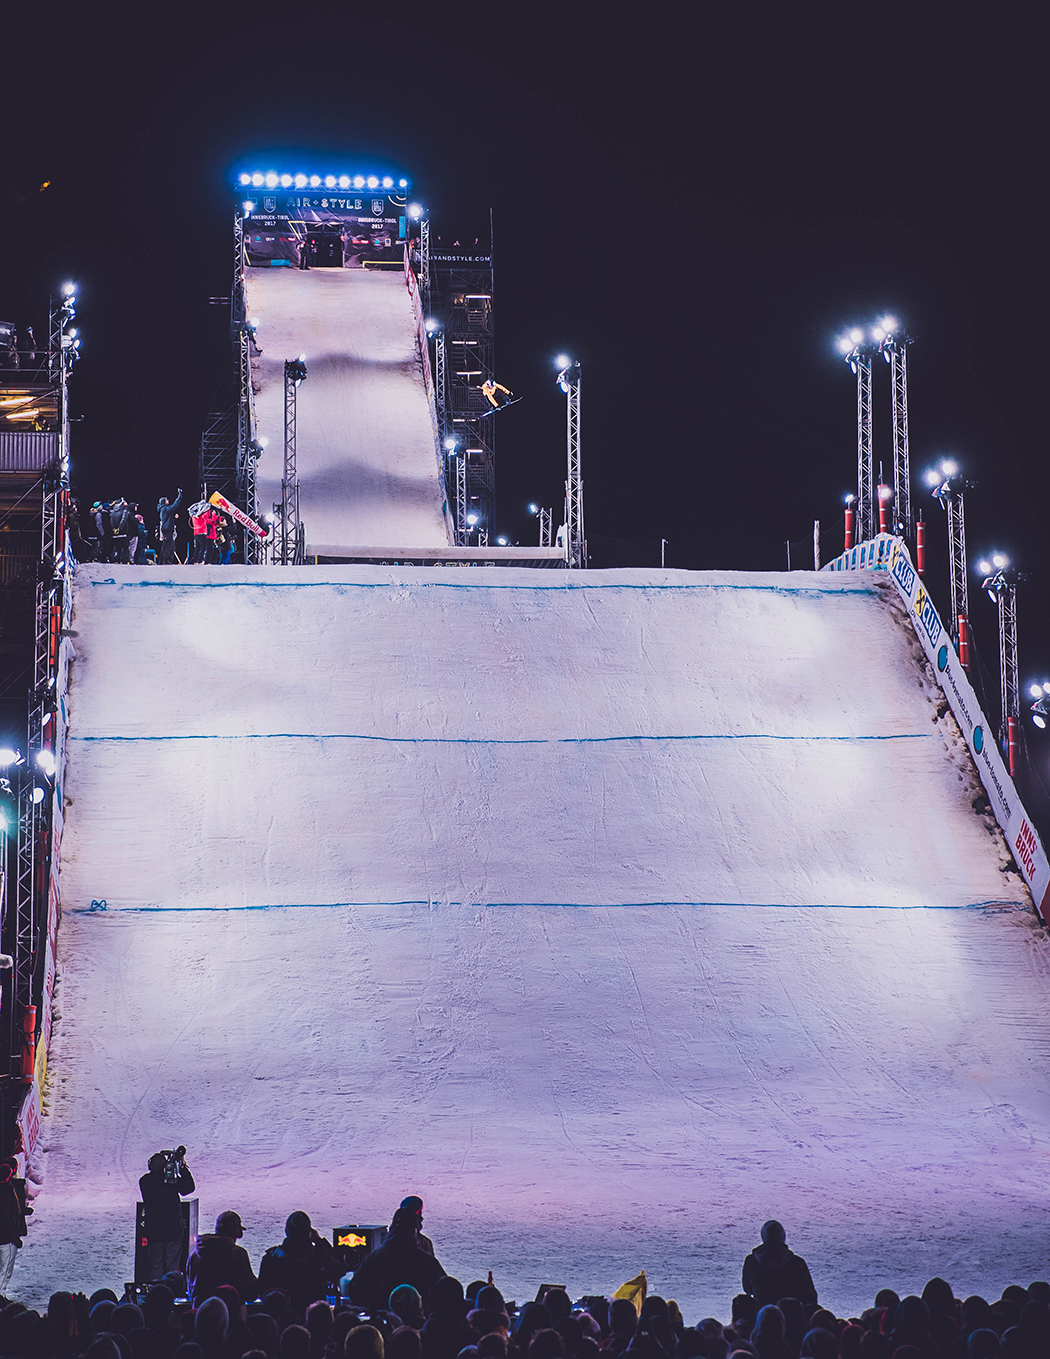 Lifestyleblog-Lifestyleblogger-Lifestyle-Blog-Blogger-AirandStyle-Air-and-Style-Innsbruck-2017-Lindarella-18